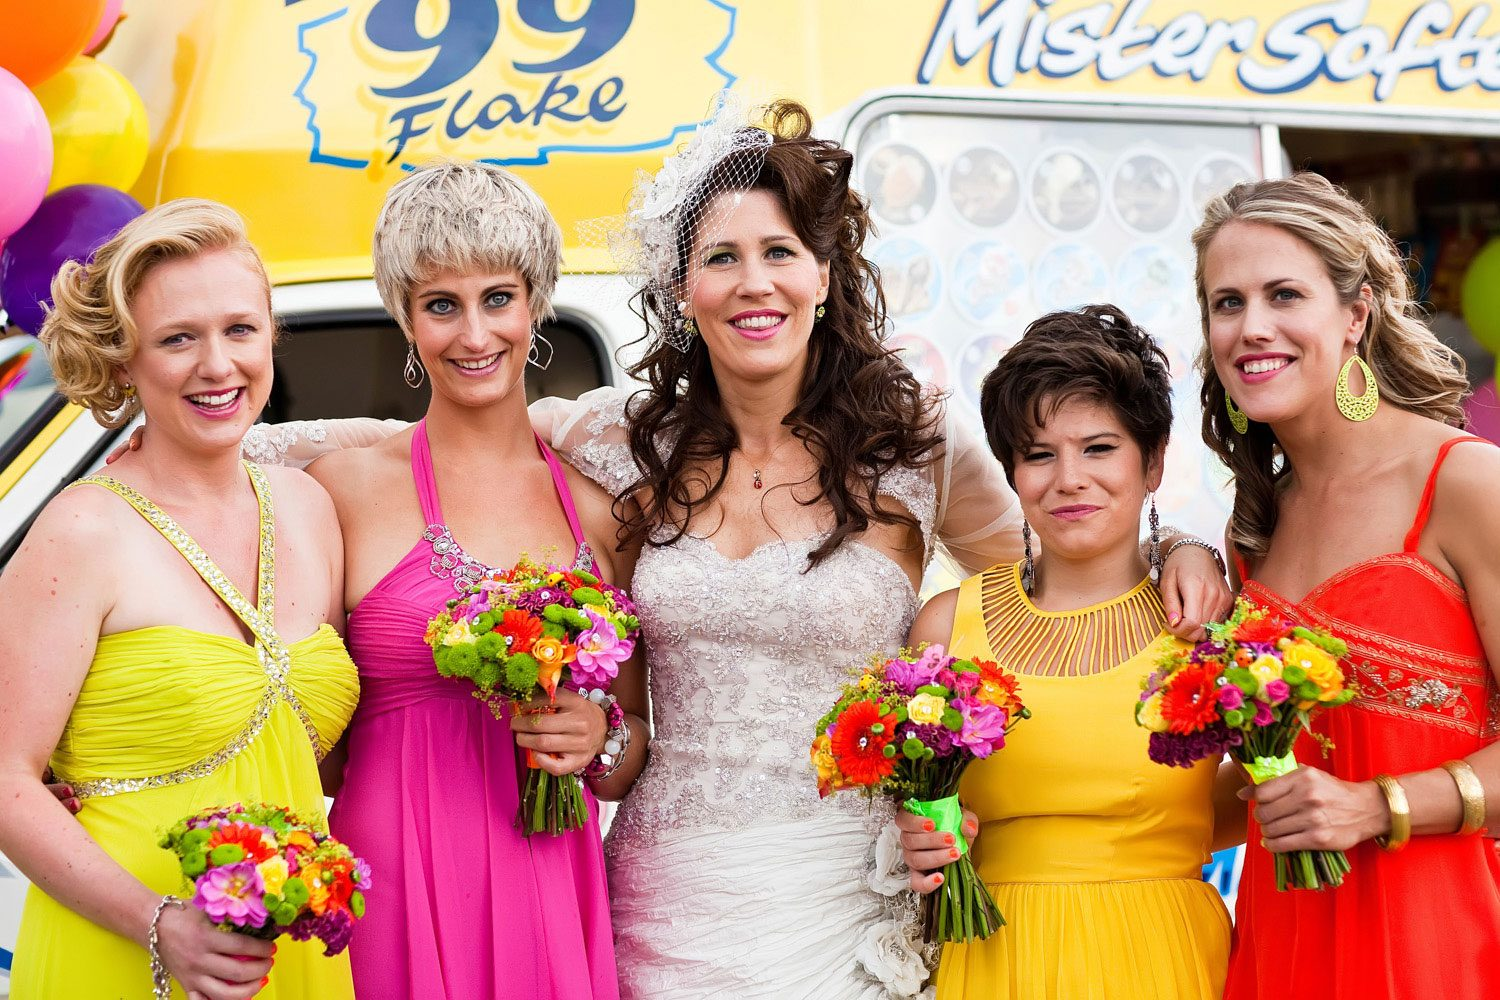 bride and bridesmaids pose in from of ice cream van